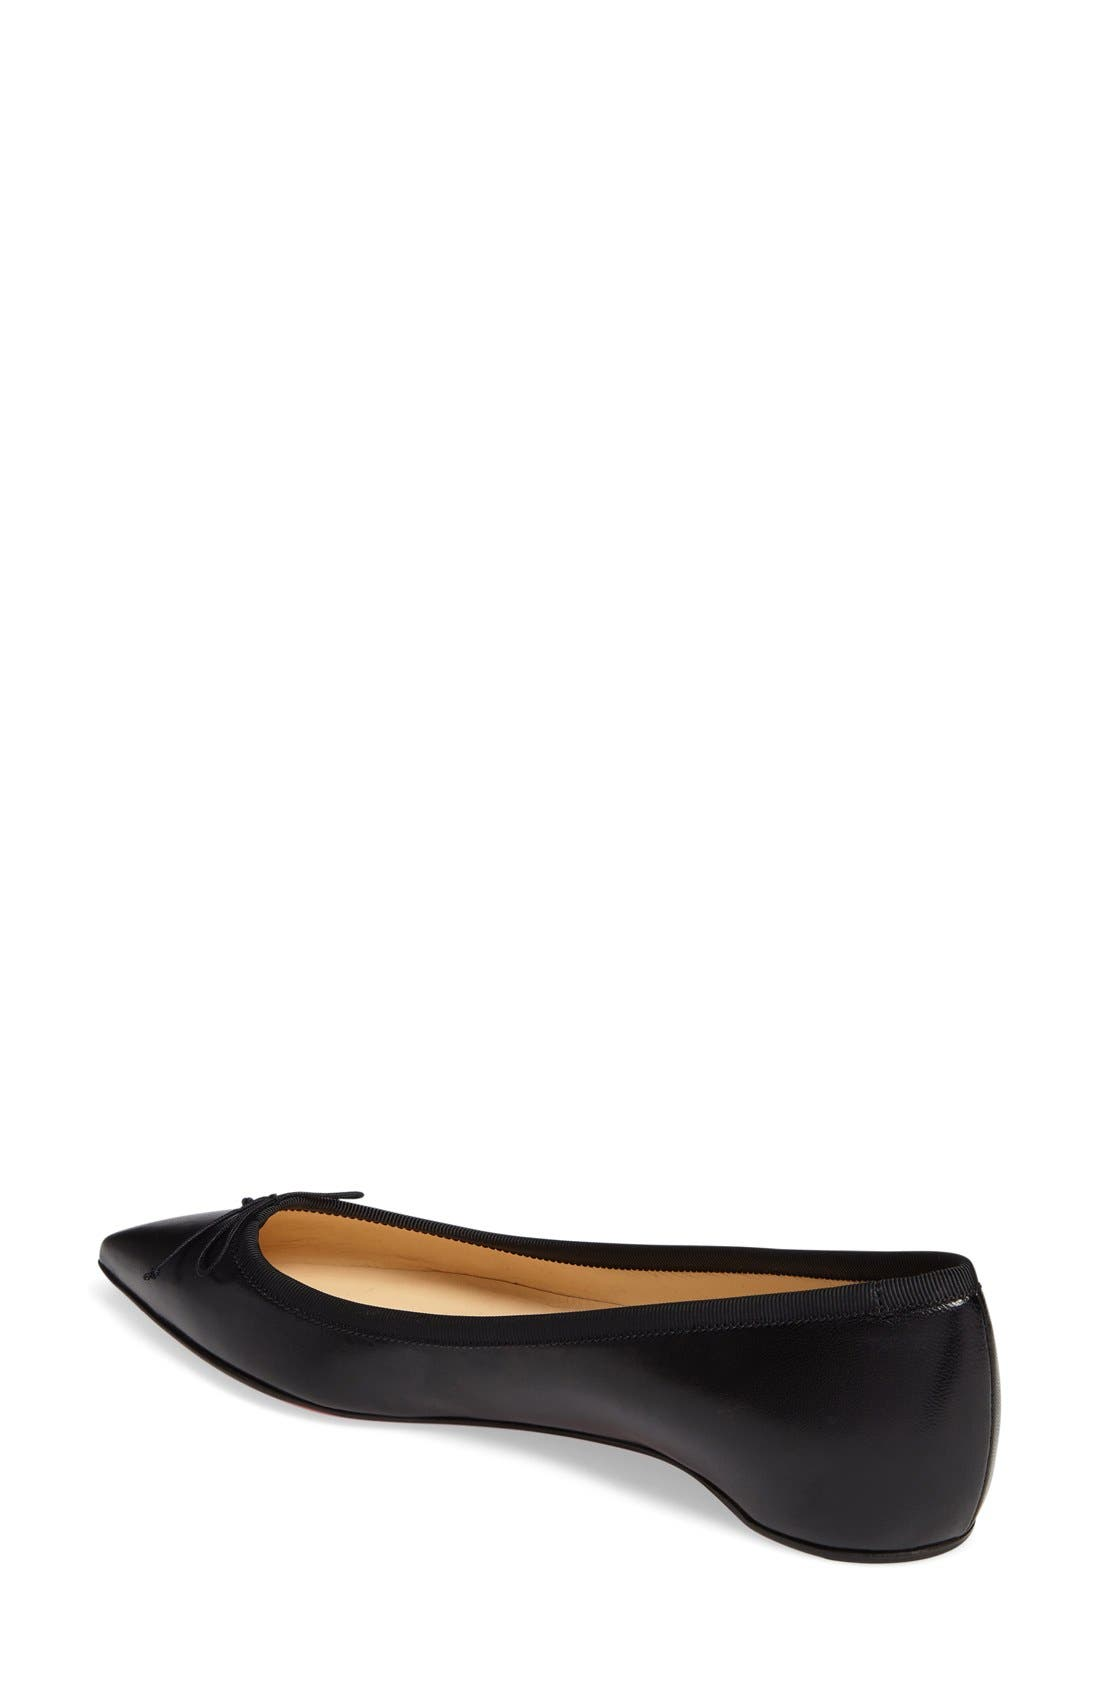 Solasofia Pointy Toe Flat,                             Alternate thumbnail 2, color,                             Black Leather